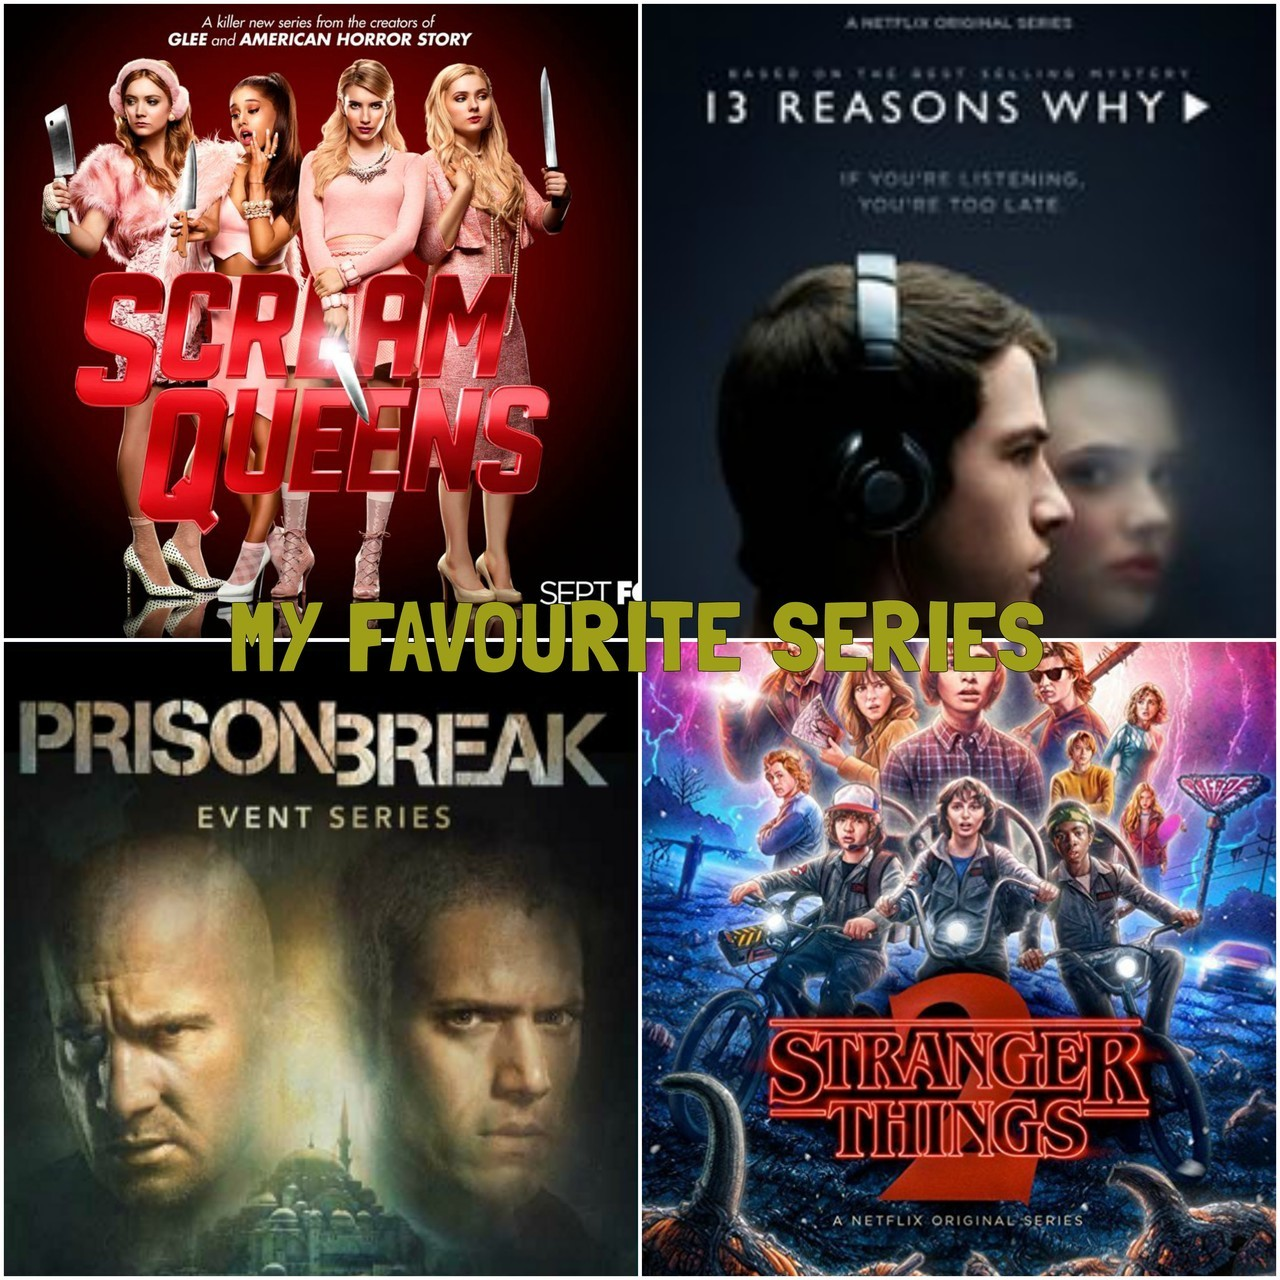 article, series, and 13 reasons why image